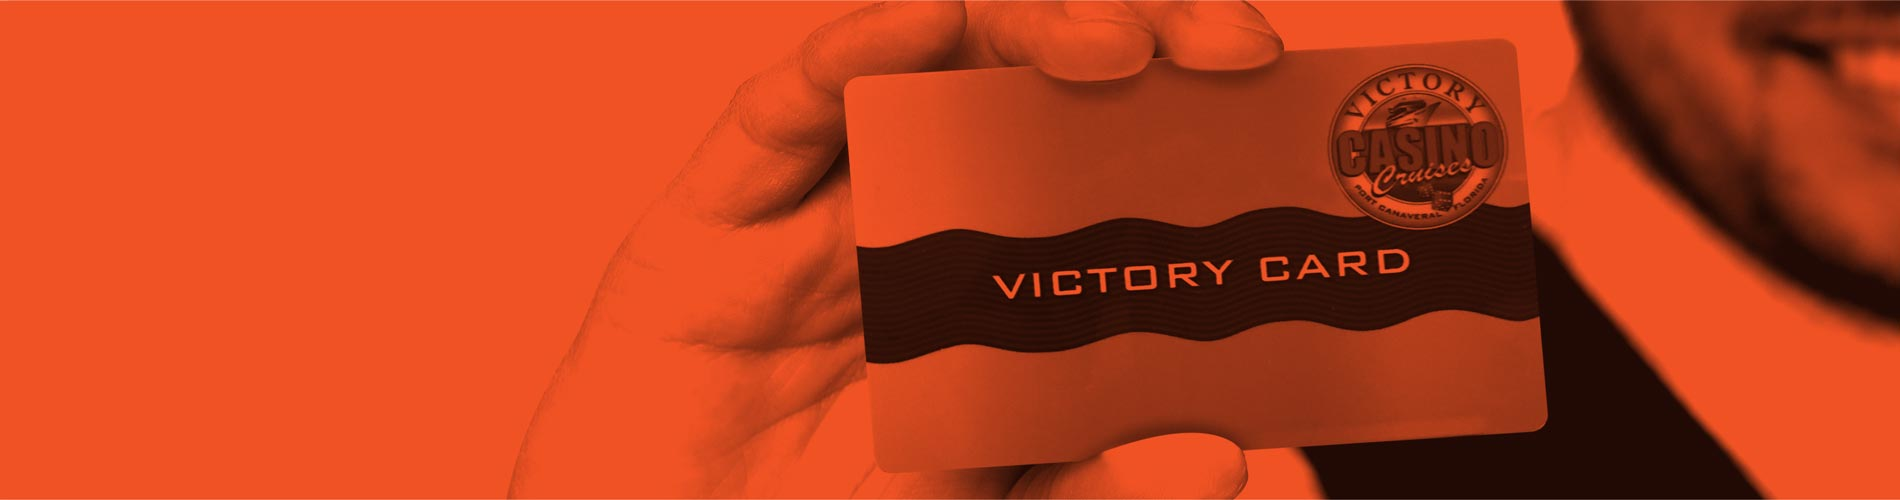 Victory Card Membership Levels